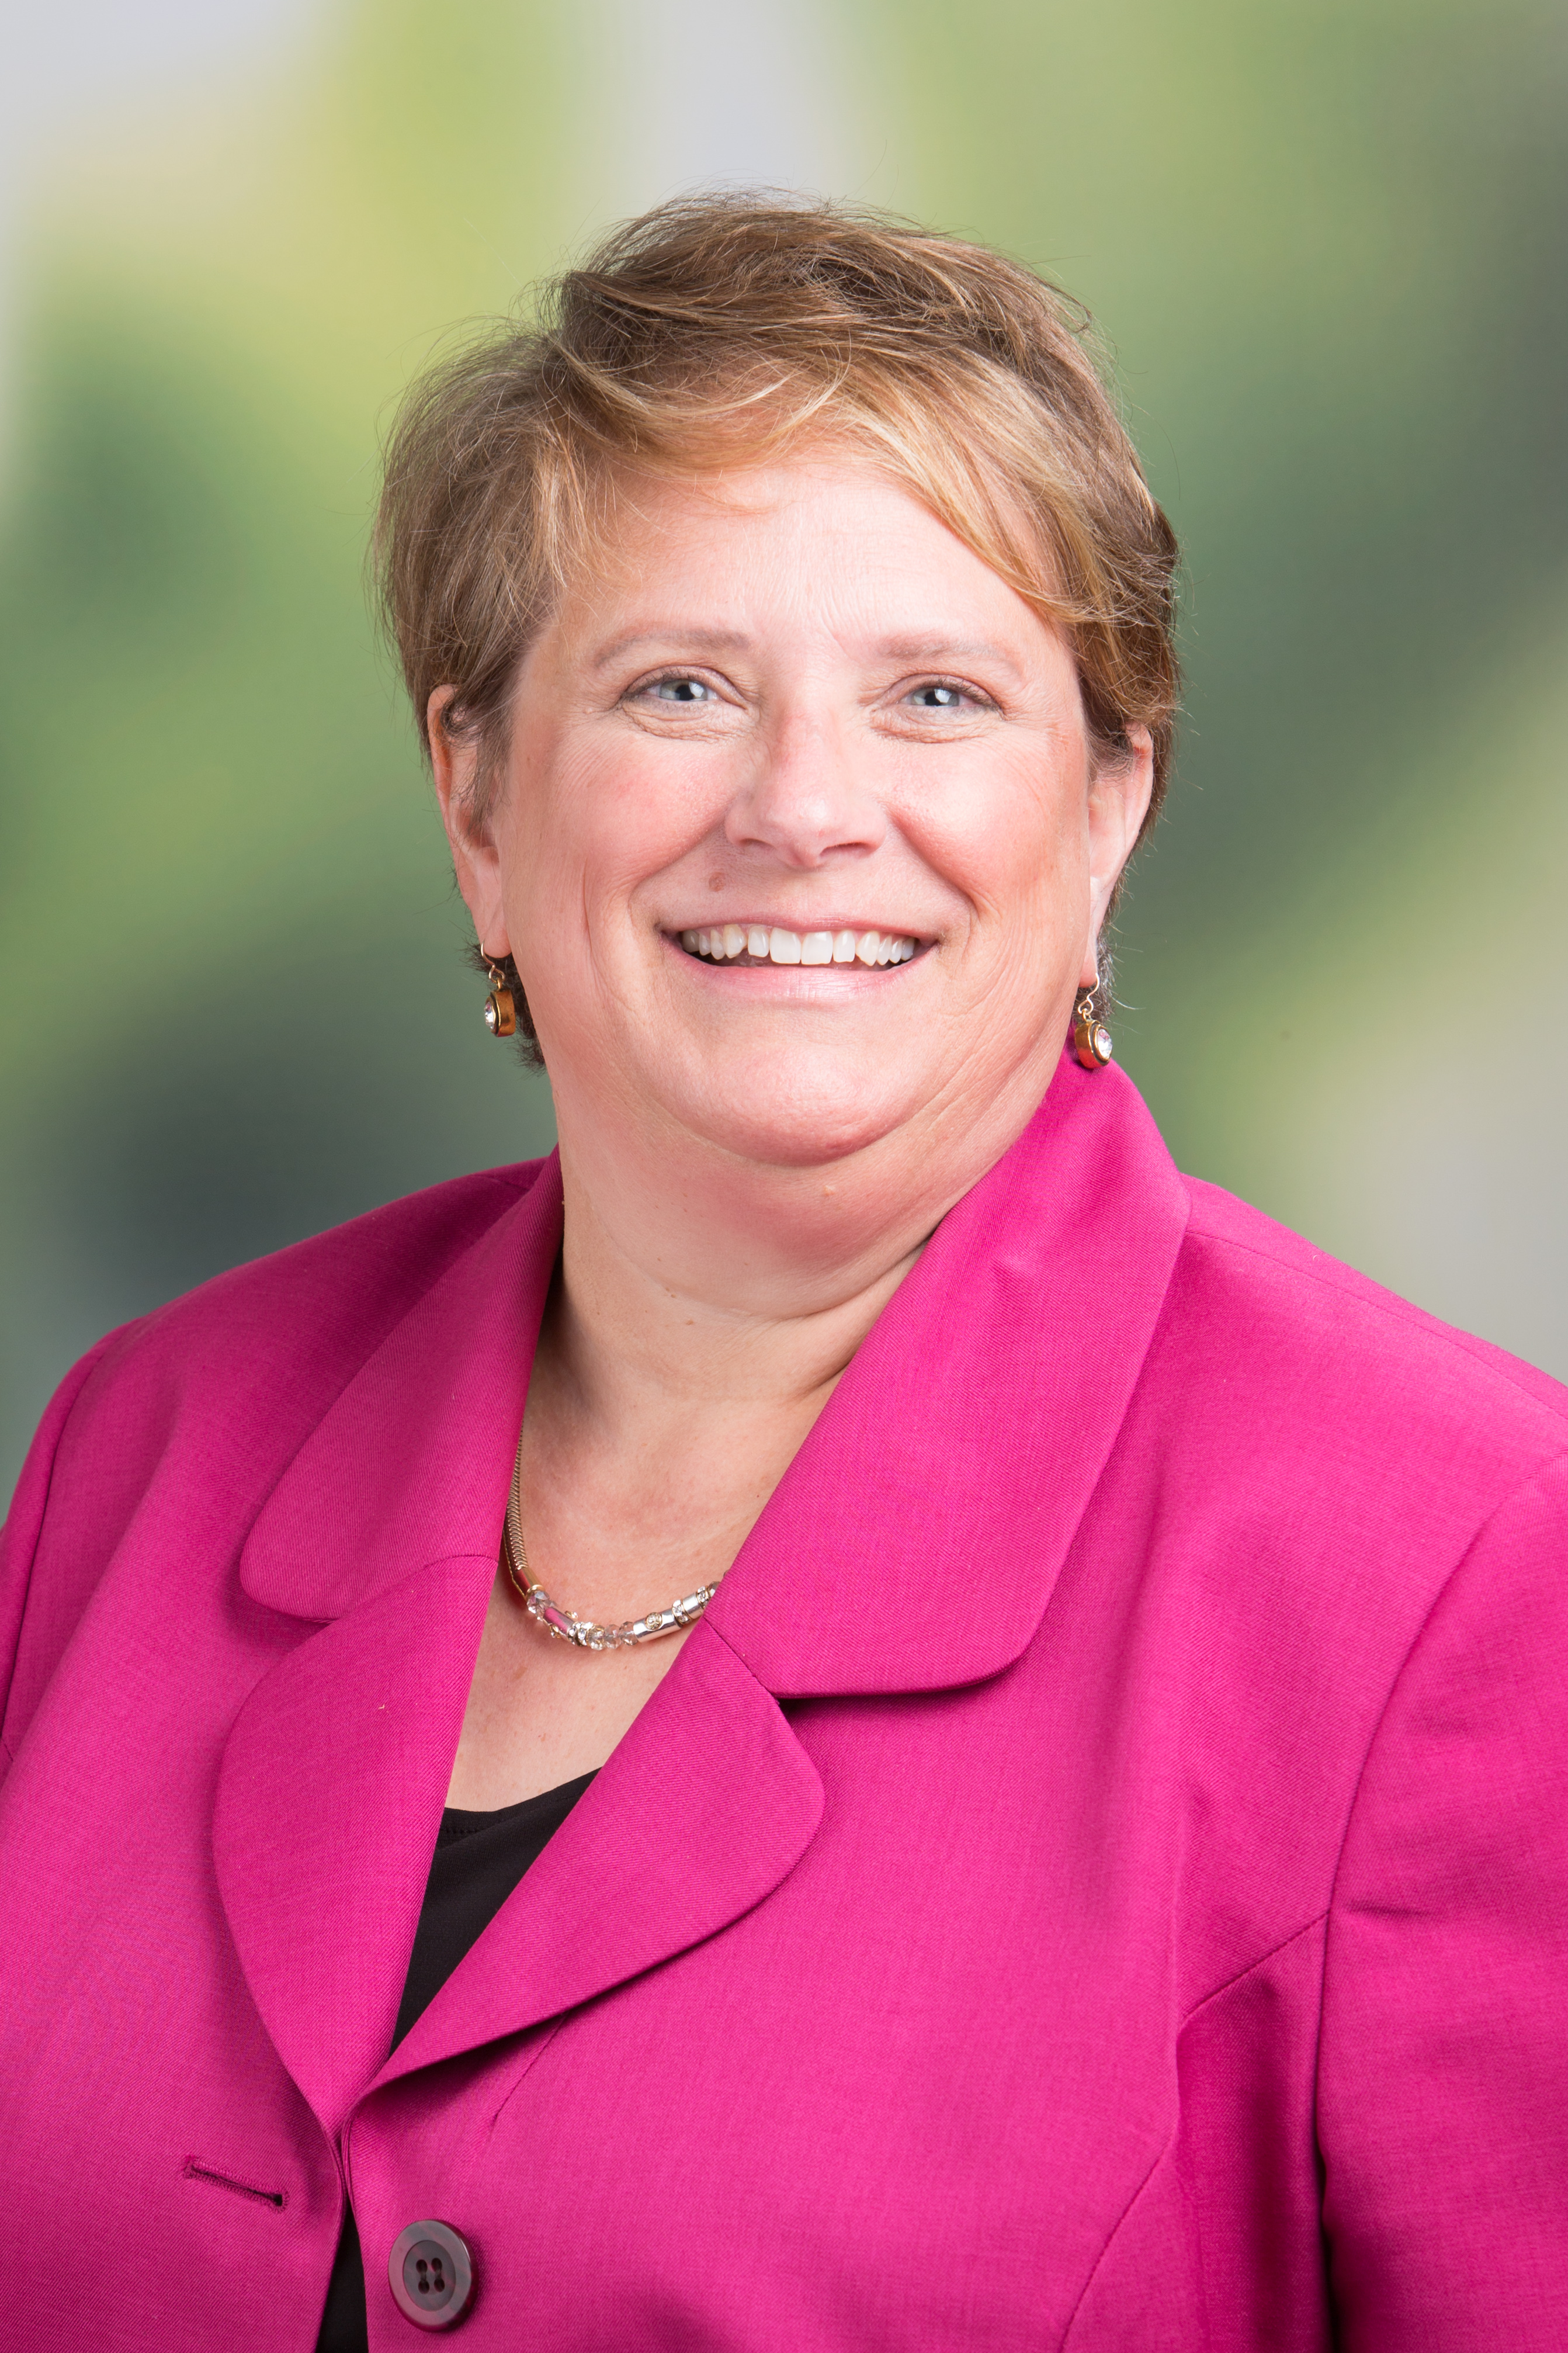 Elaine Storrs, Chief Nursing Officer, Mercy Health - Springfield